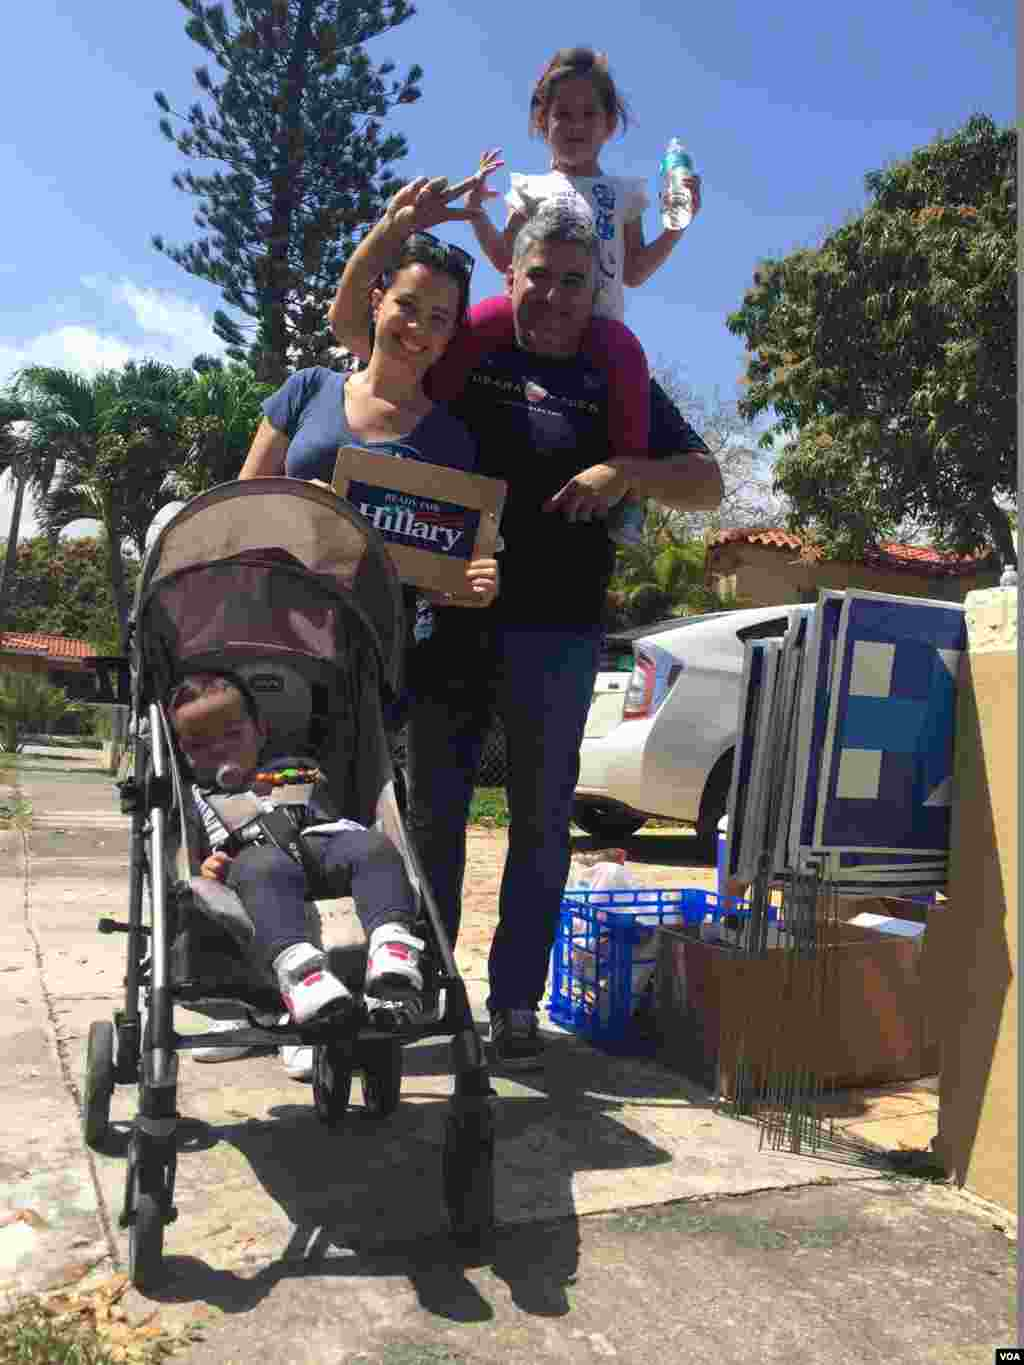 This Florida family is set to vote for presidential candidate Hillary Clinton in Tuesday's primary. (C. Mendoza/VOA)